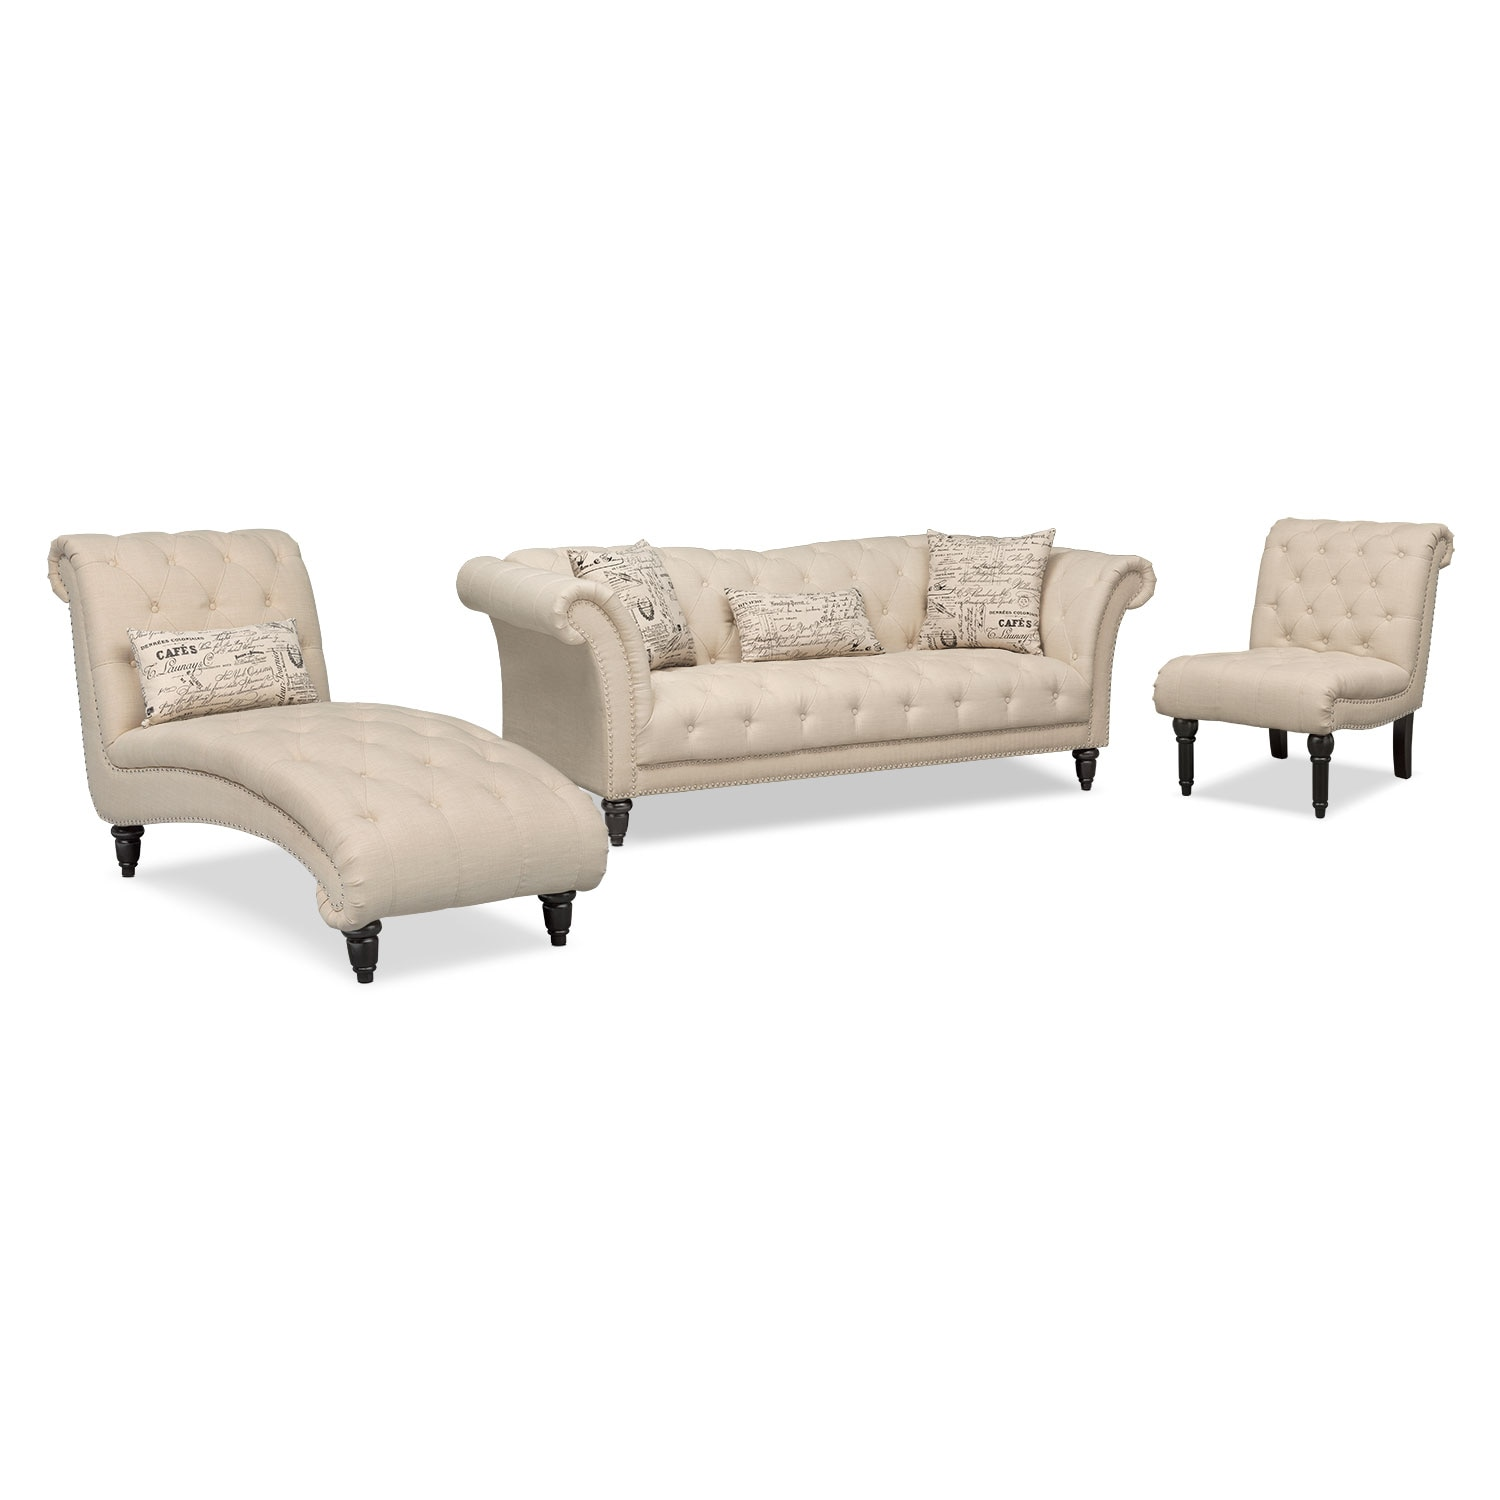 Marisol Sofa, Chaise and Armless Chair - Beige